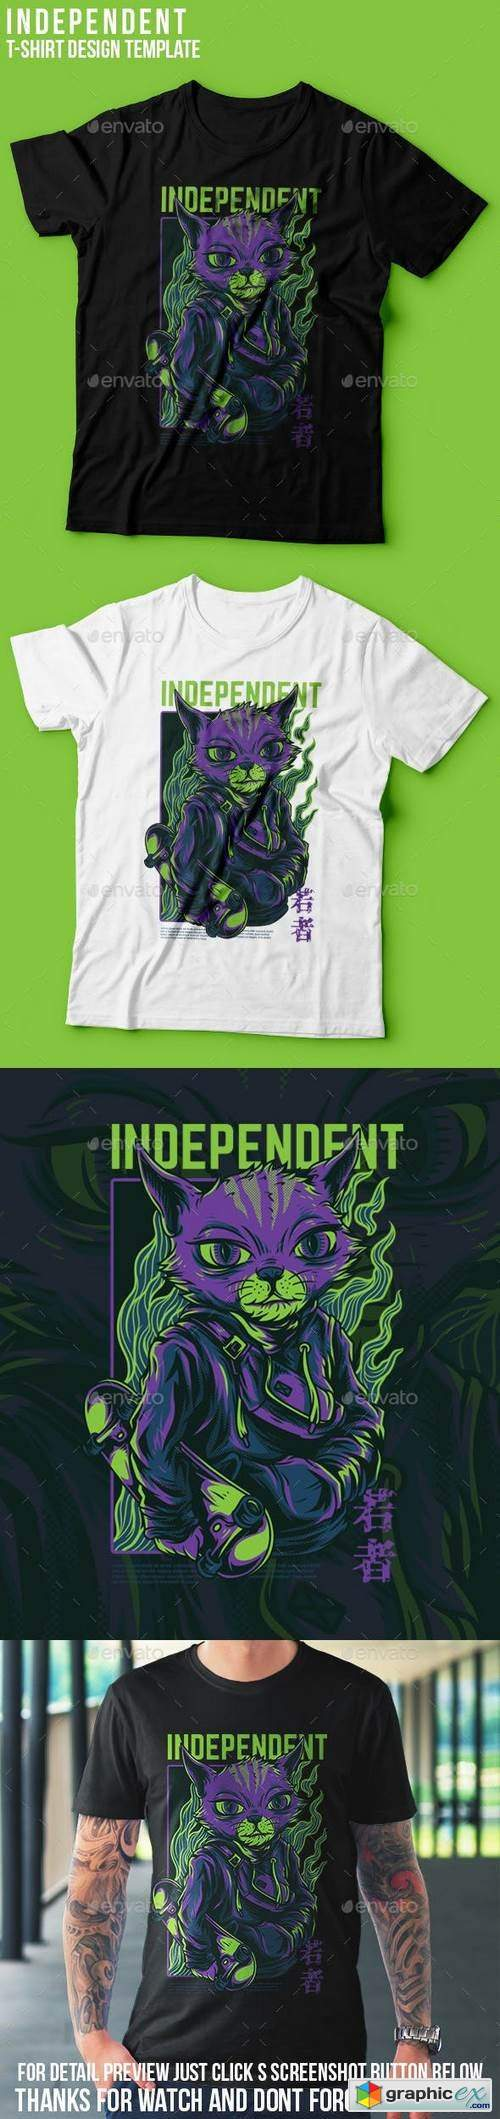 Independent Cat T-Shirt Design